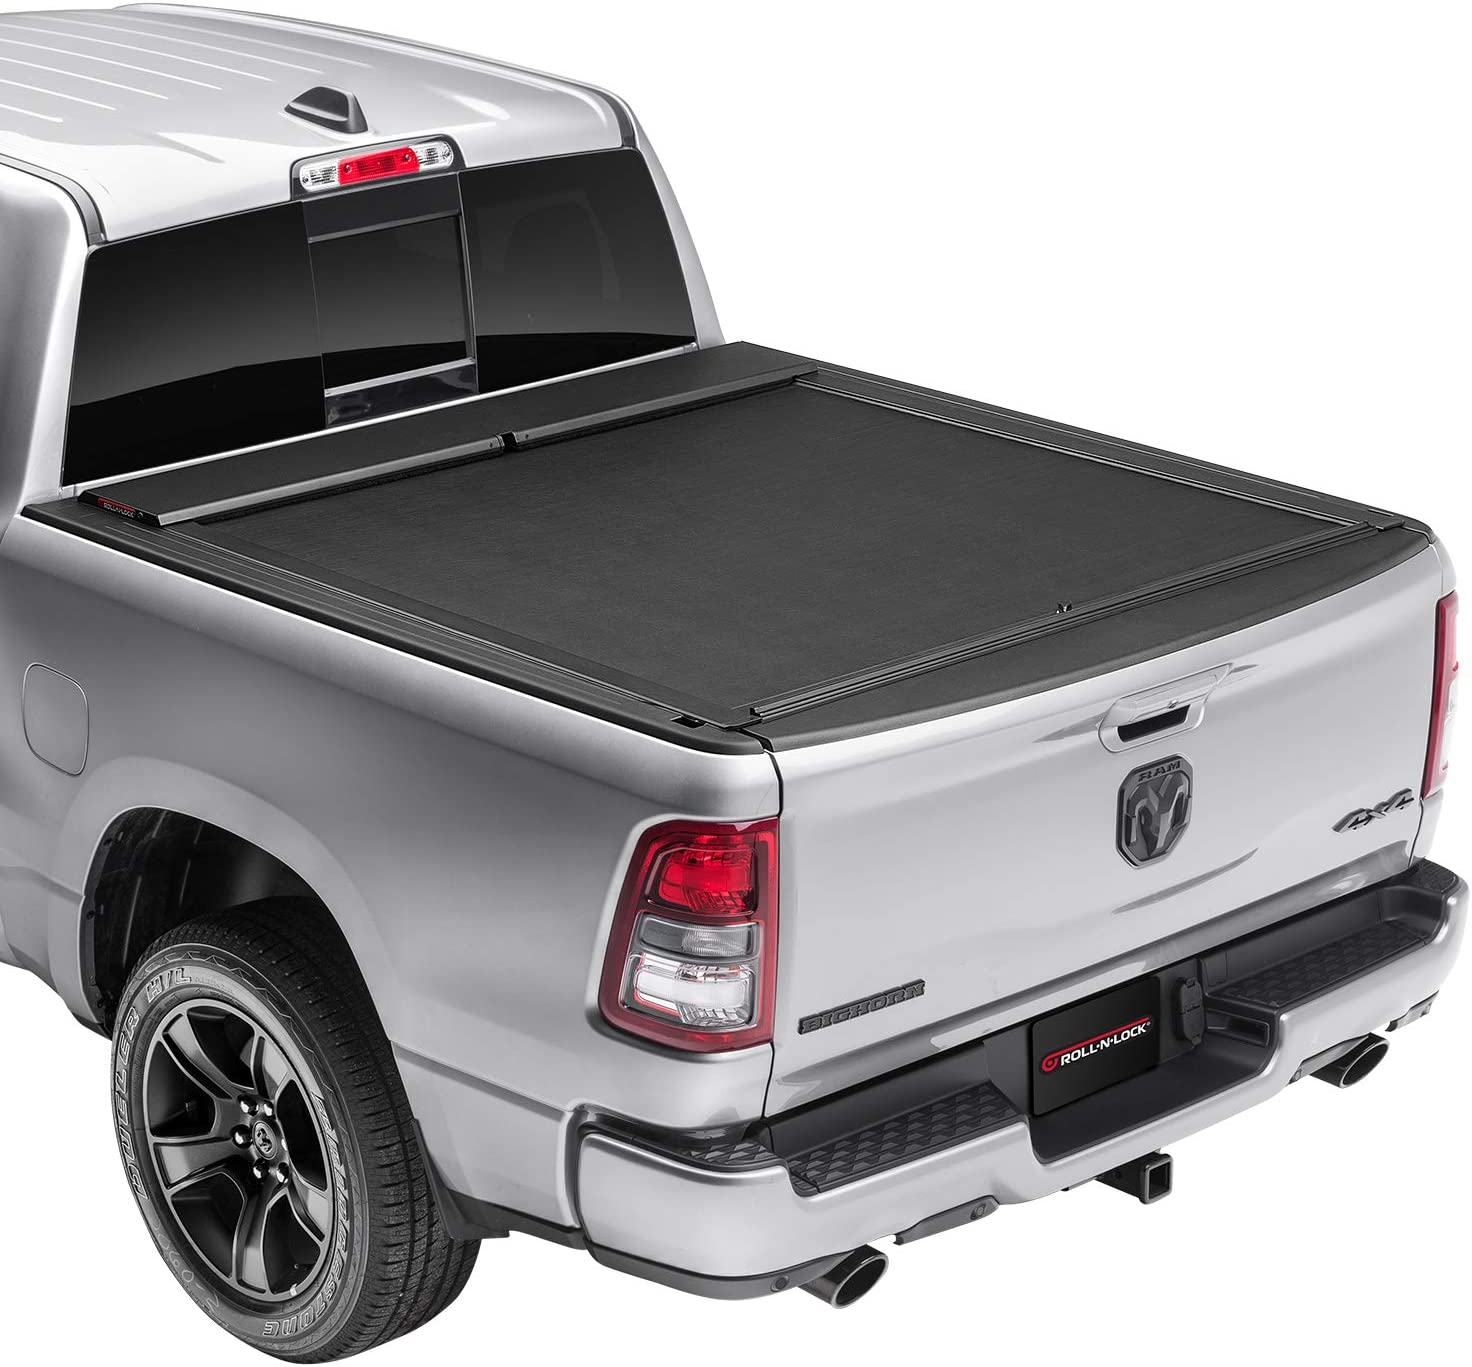 """Roll-N-Lock M-Series Retractable Truck Bed Tonneau Cover   LG456M   Fits 2012 - 2018, 19/20 Classic Dodge Ram 1500 w/RamBox 6' 4"""" Bed (76.3"""")"""